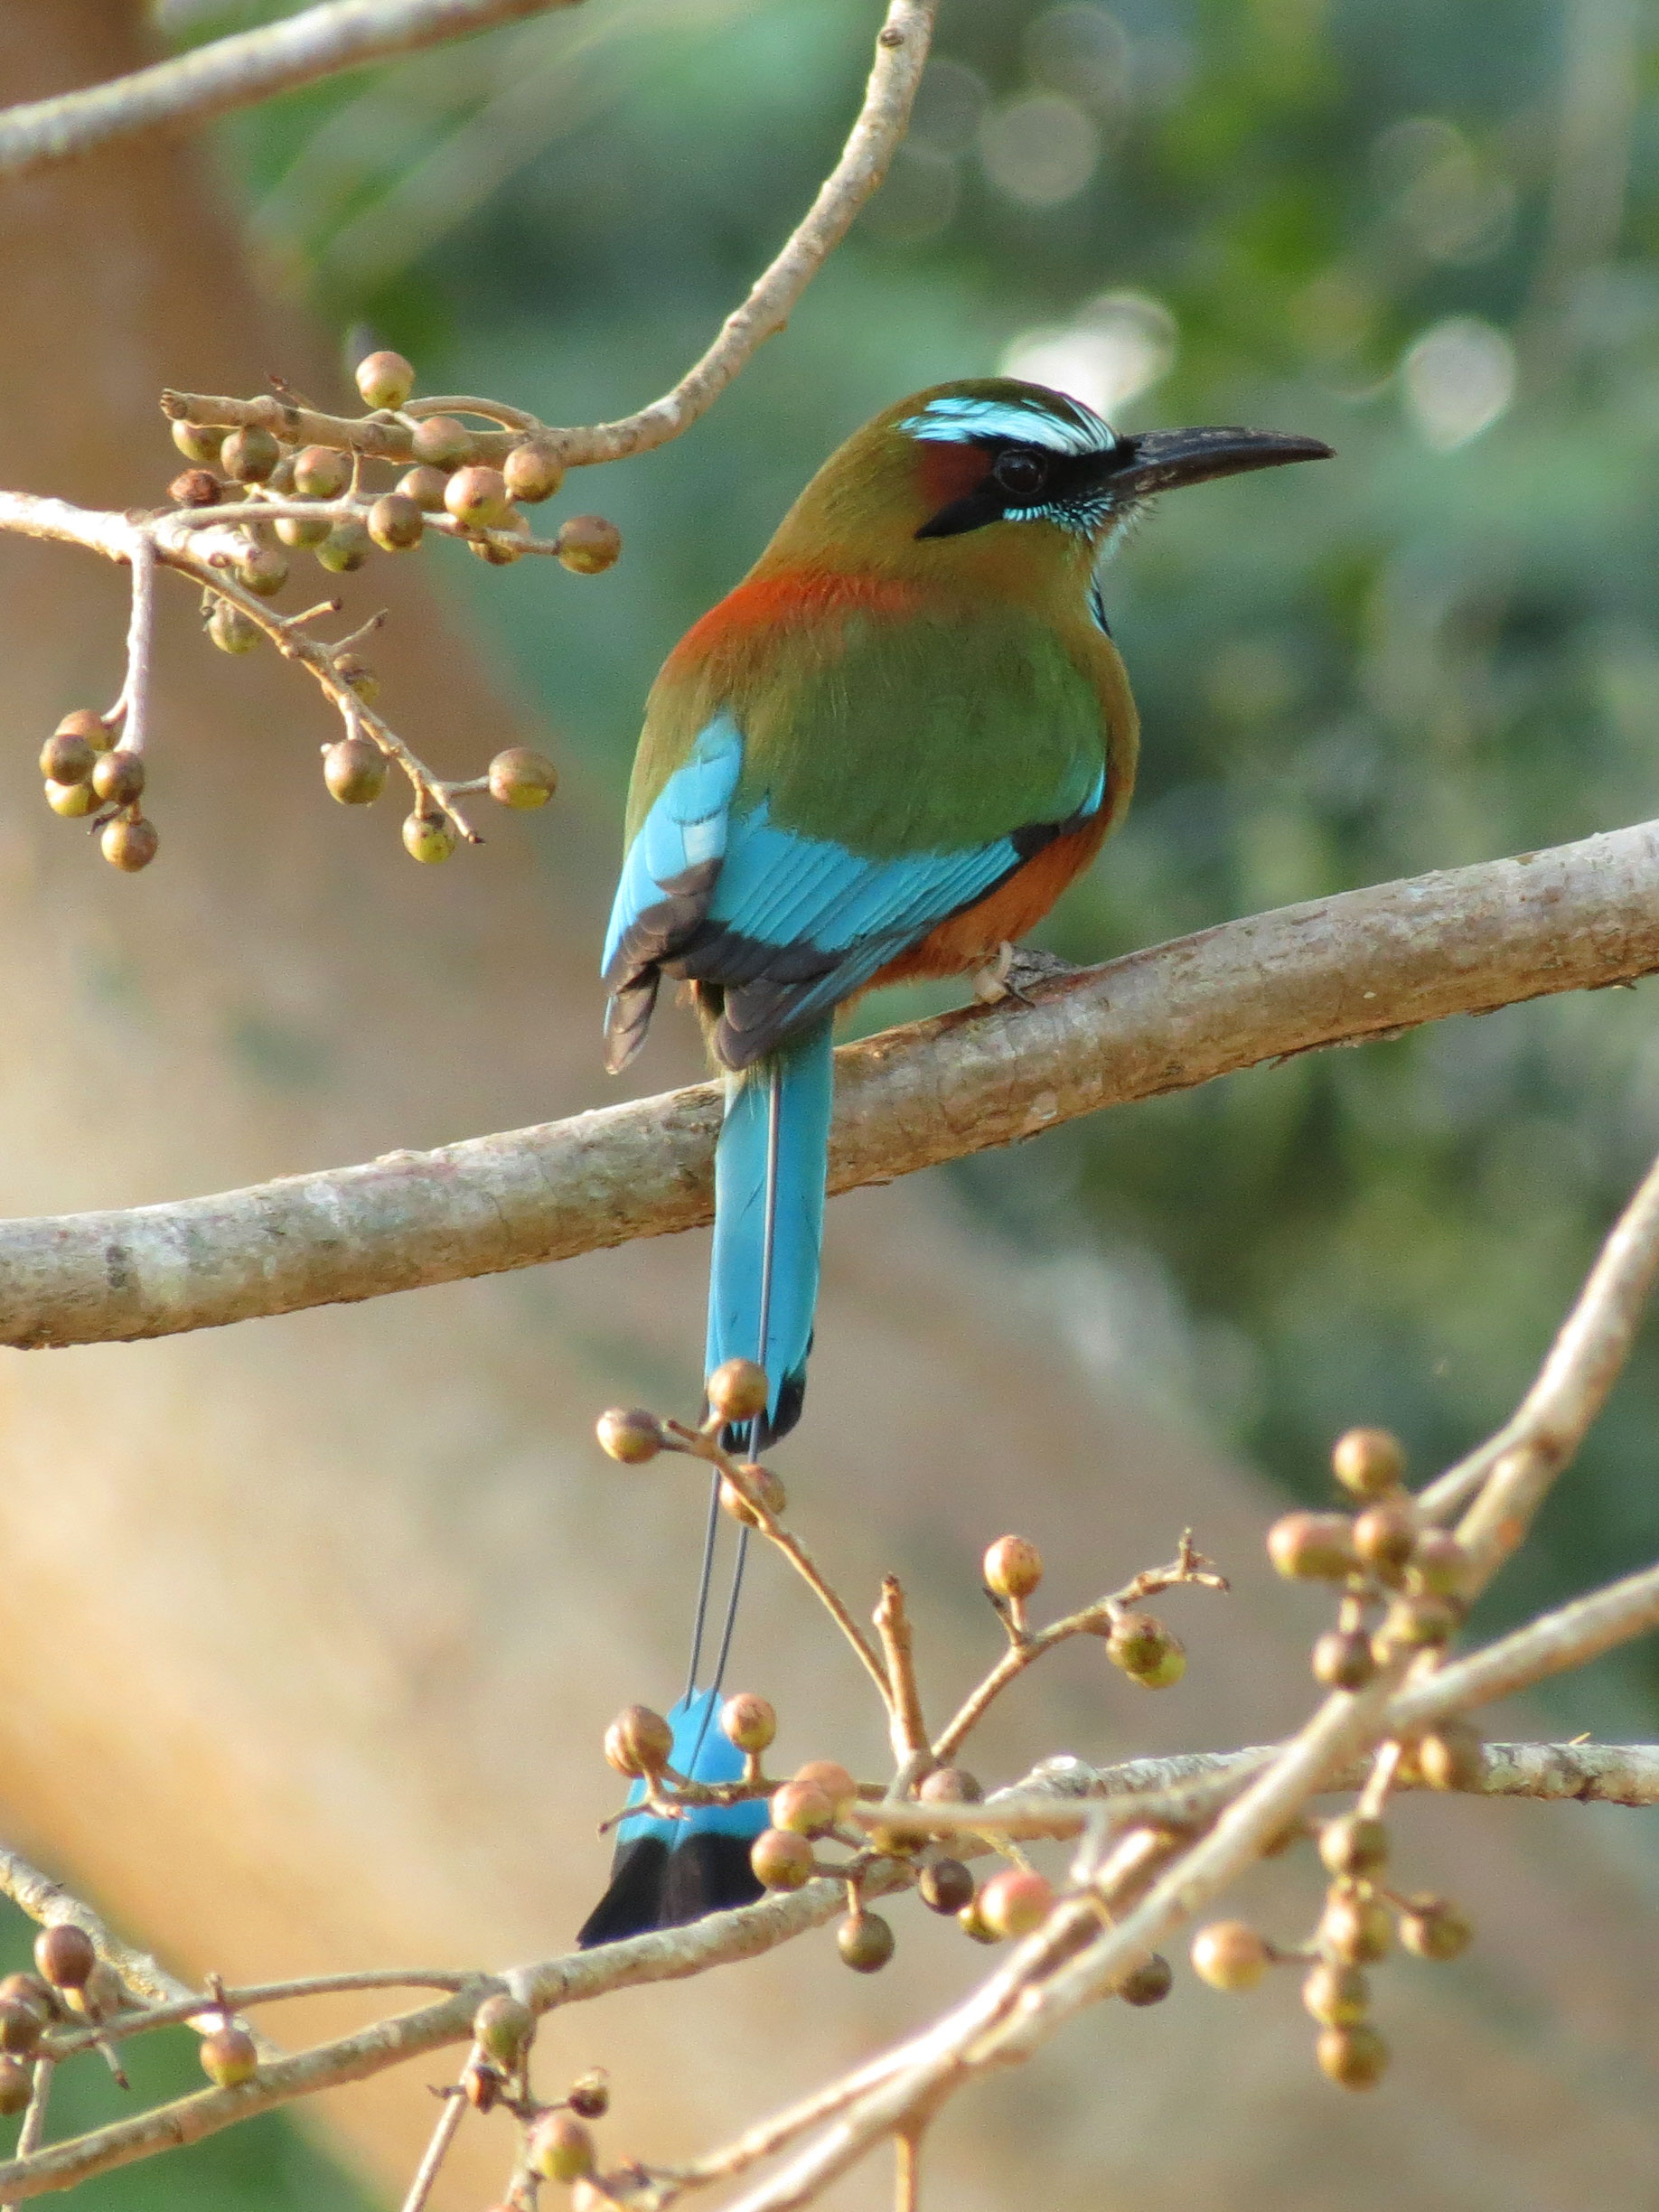 El Salvador National Animal : salvador, national, animal, File:Turquoise-browed, Motmot, (16423222357).jpg, Wikimedia, Commons